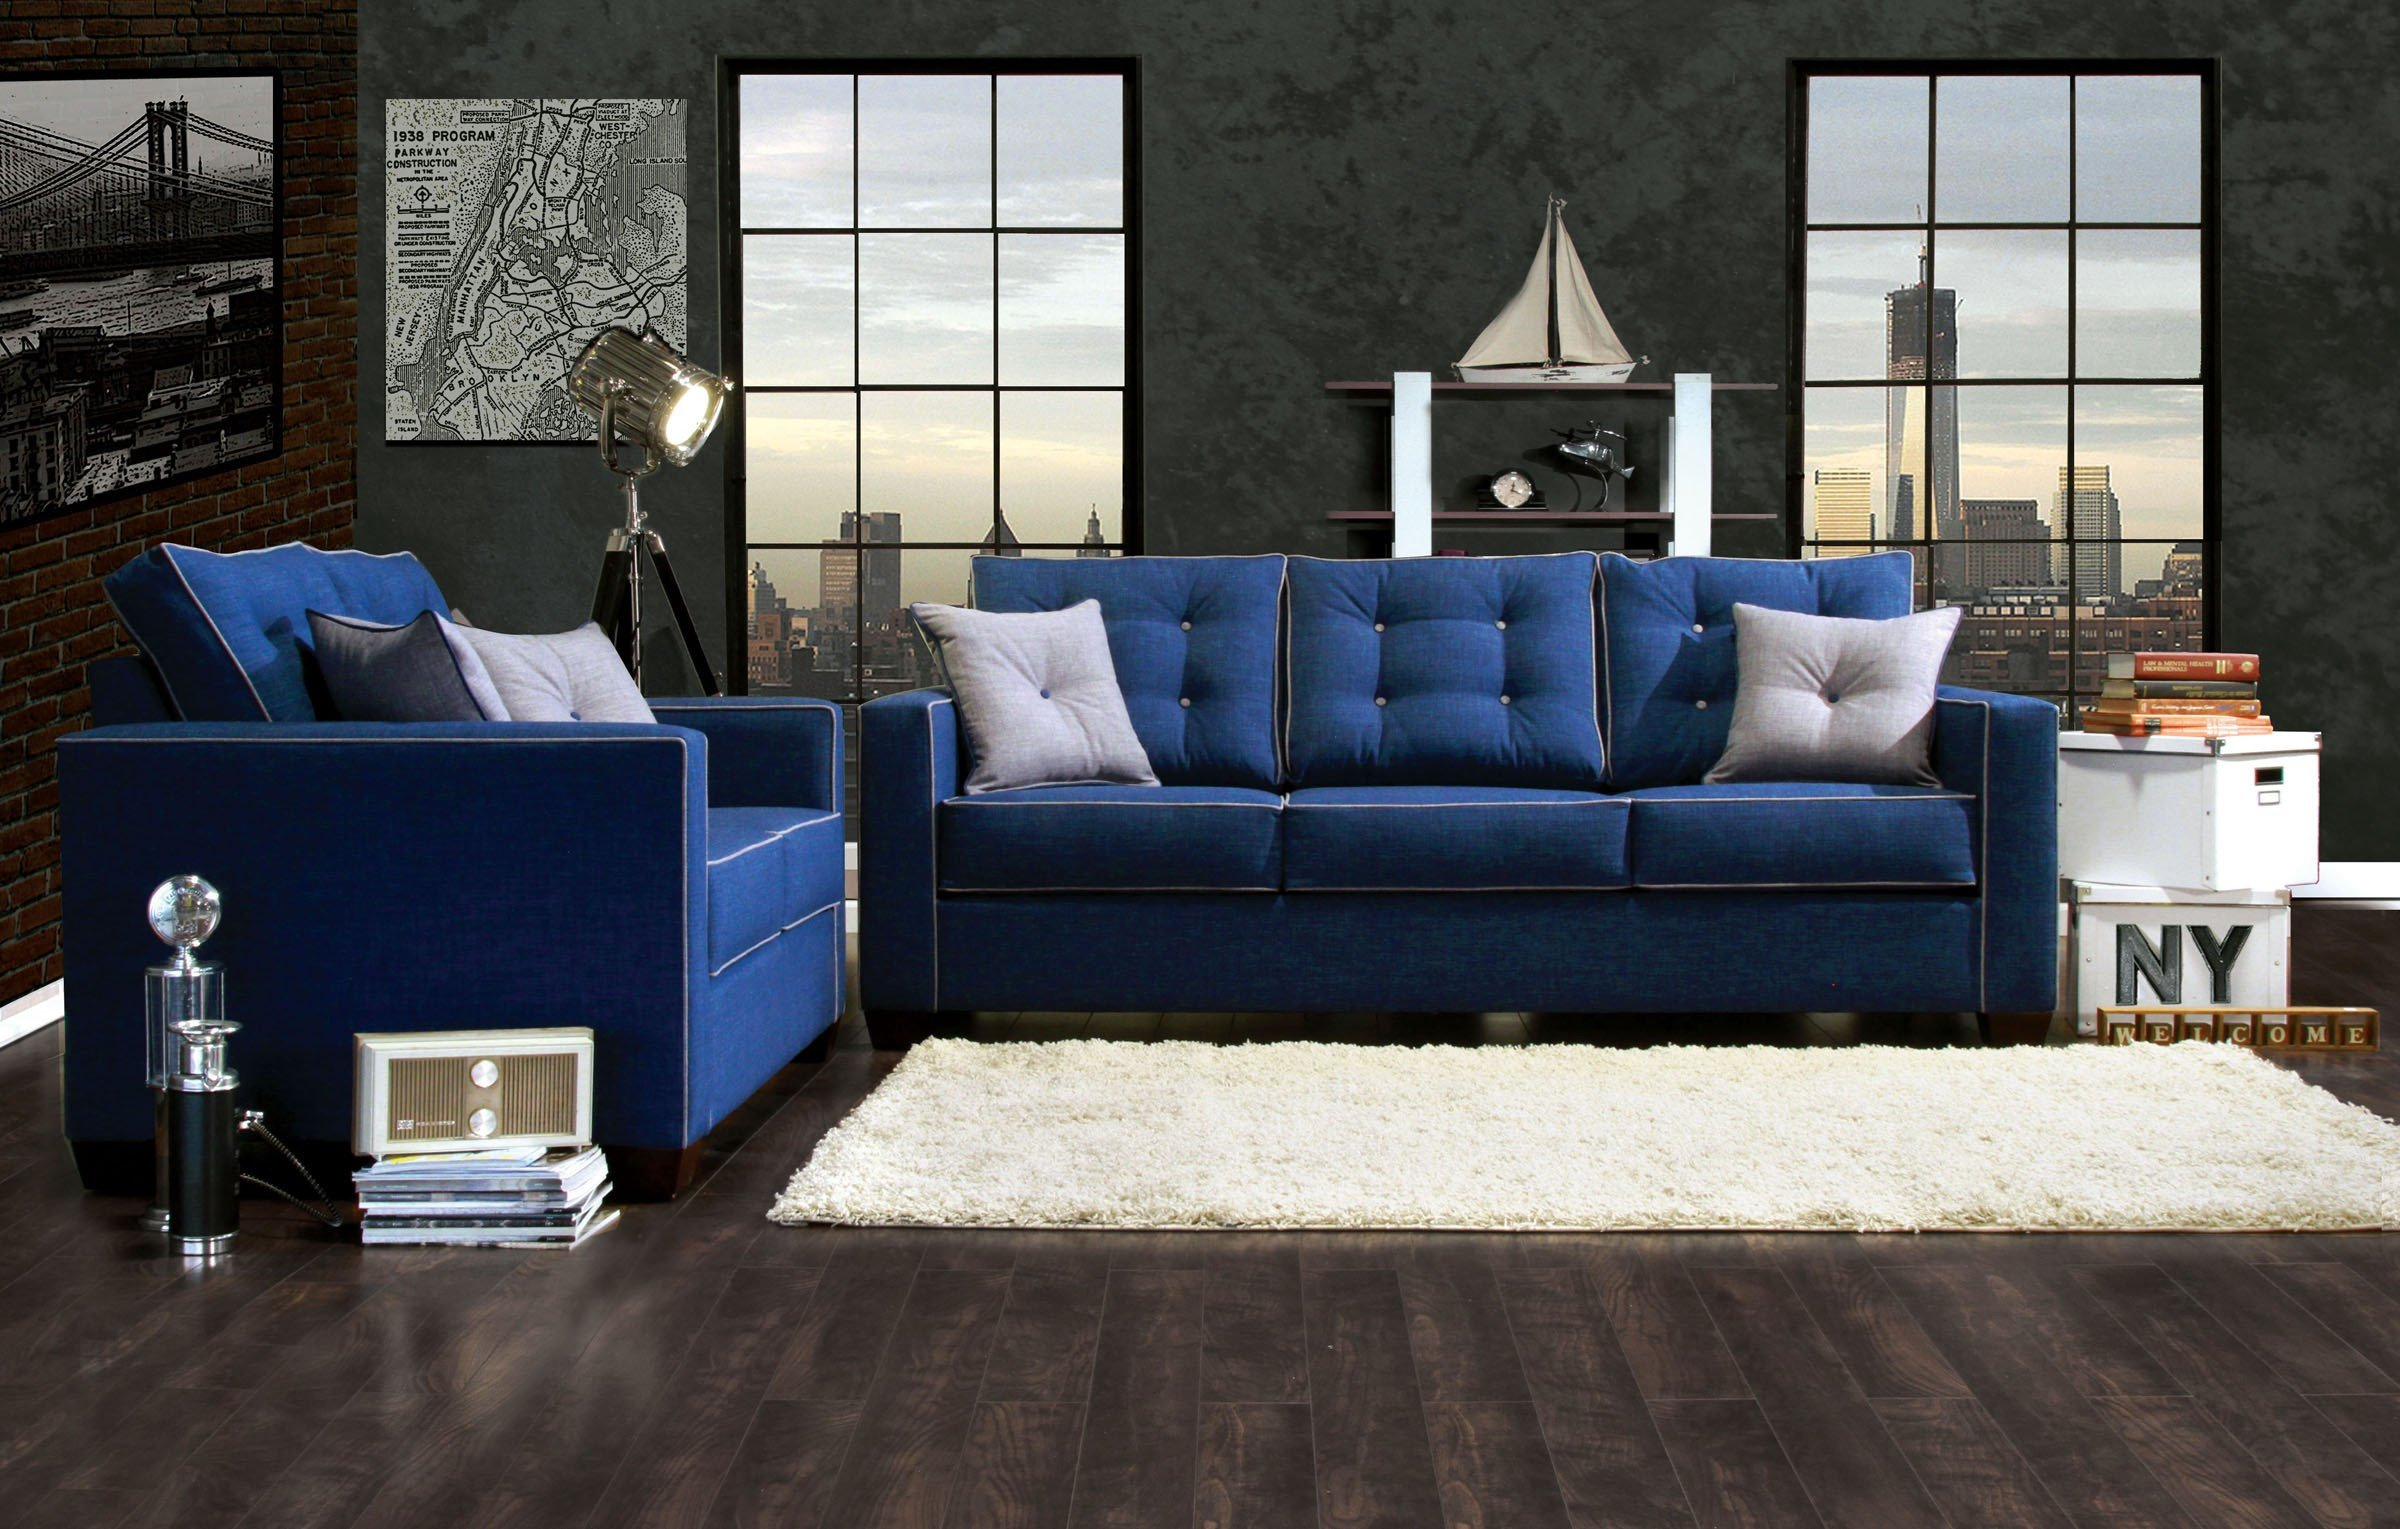 Royal Blue Living Room Decor Living Room Blue Chairs Royal Furniture and Gold Pieces